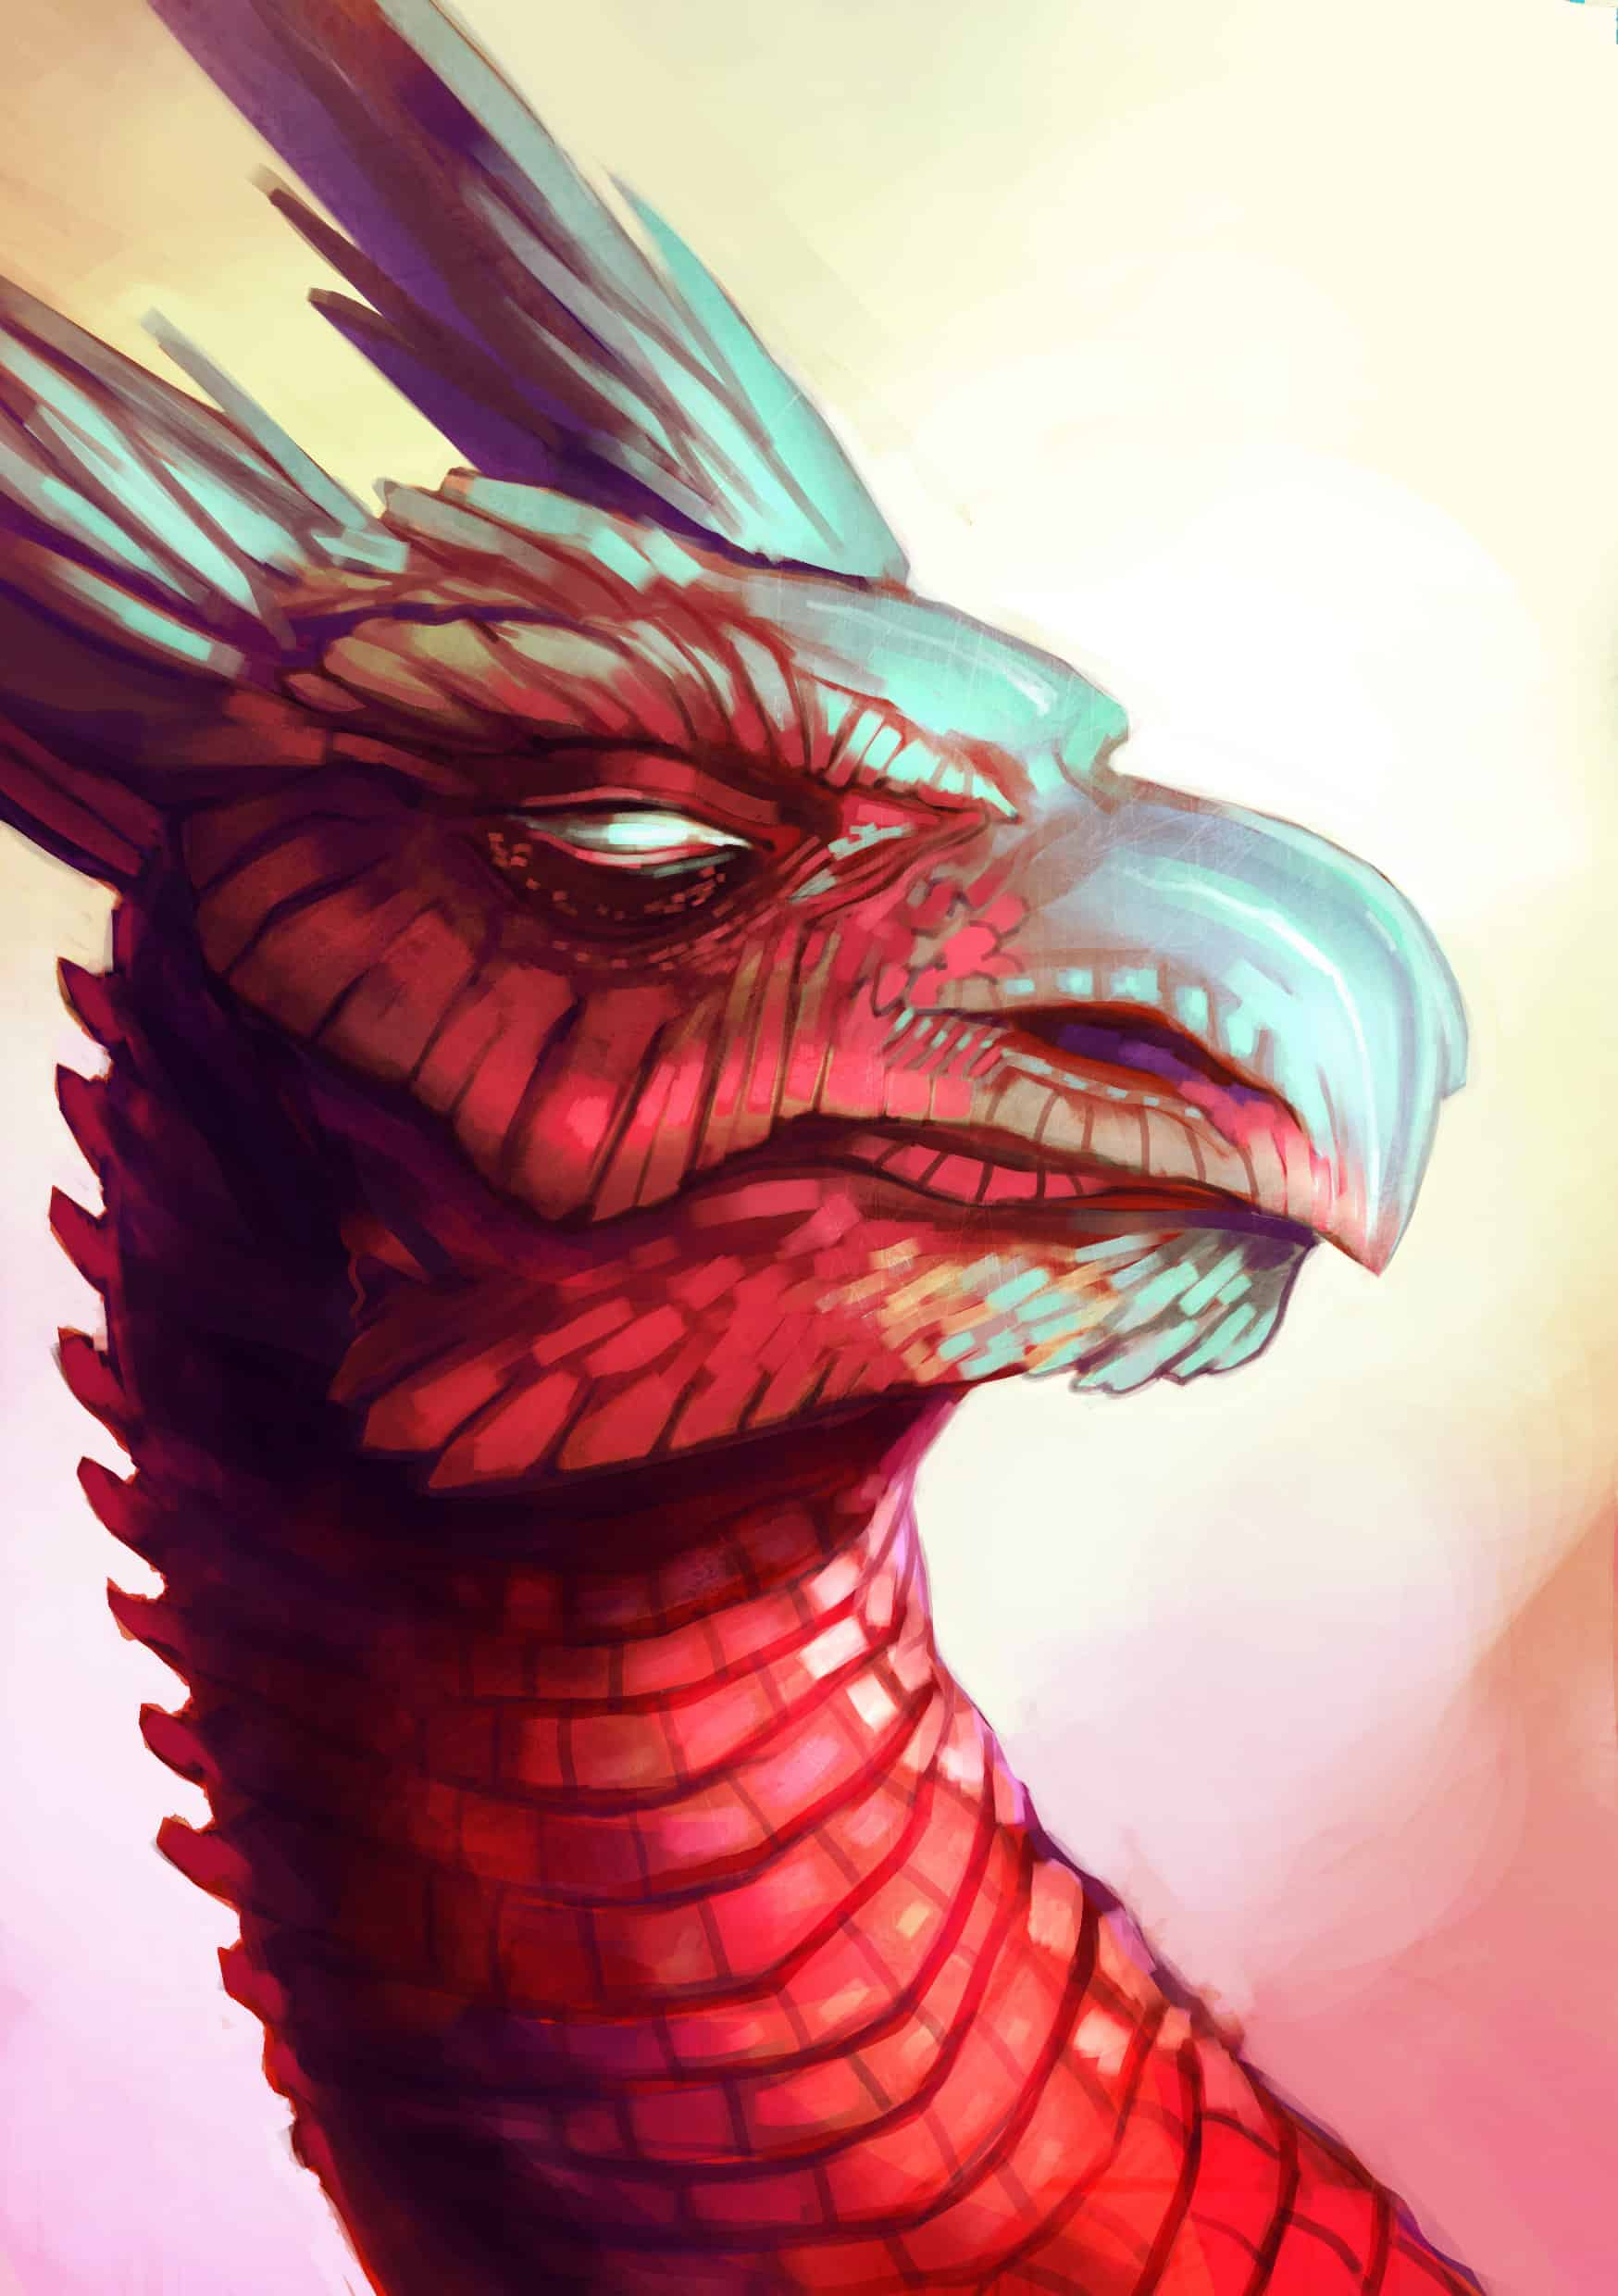 King Dragon by iella